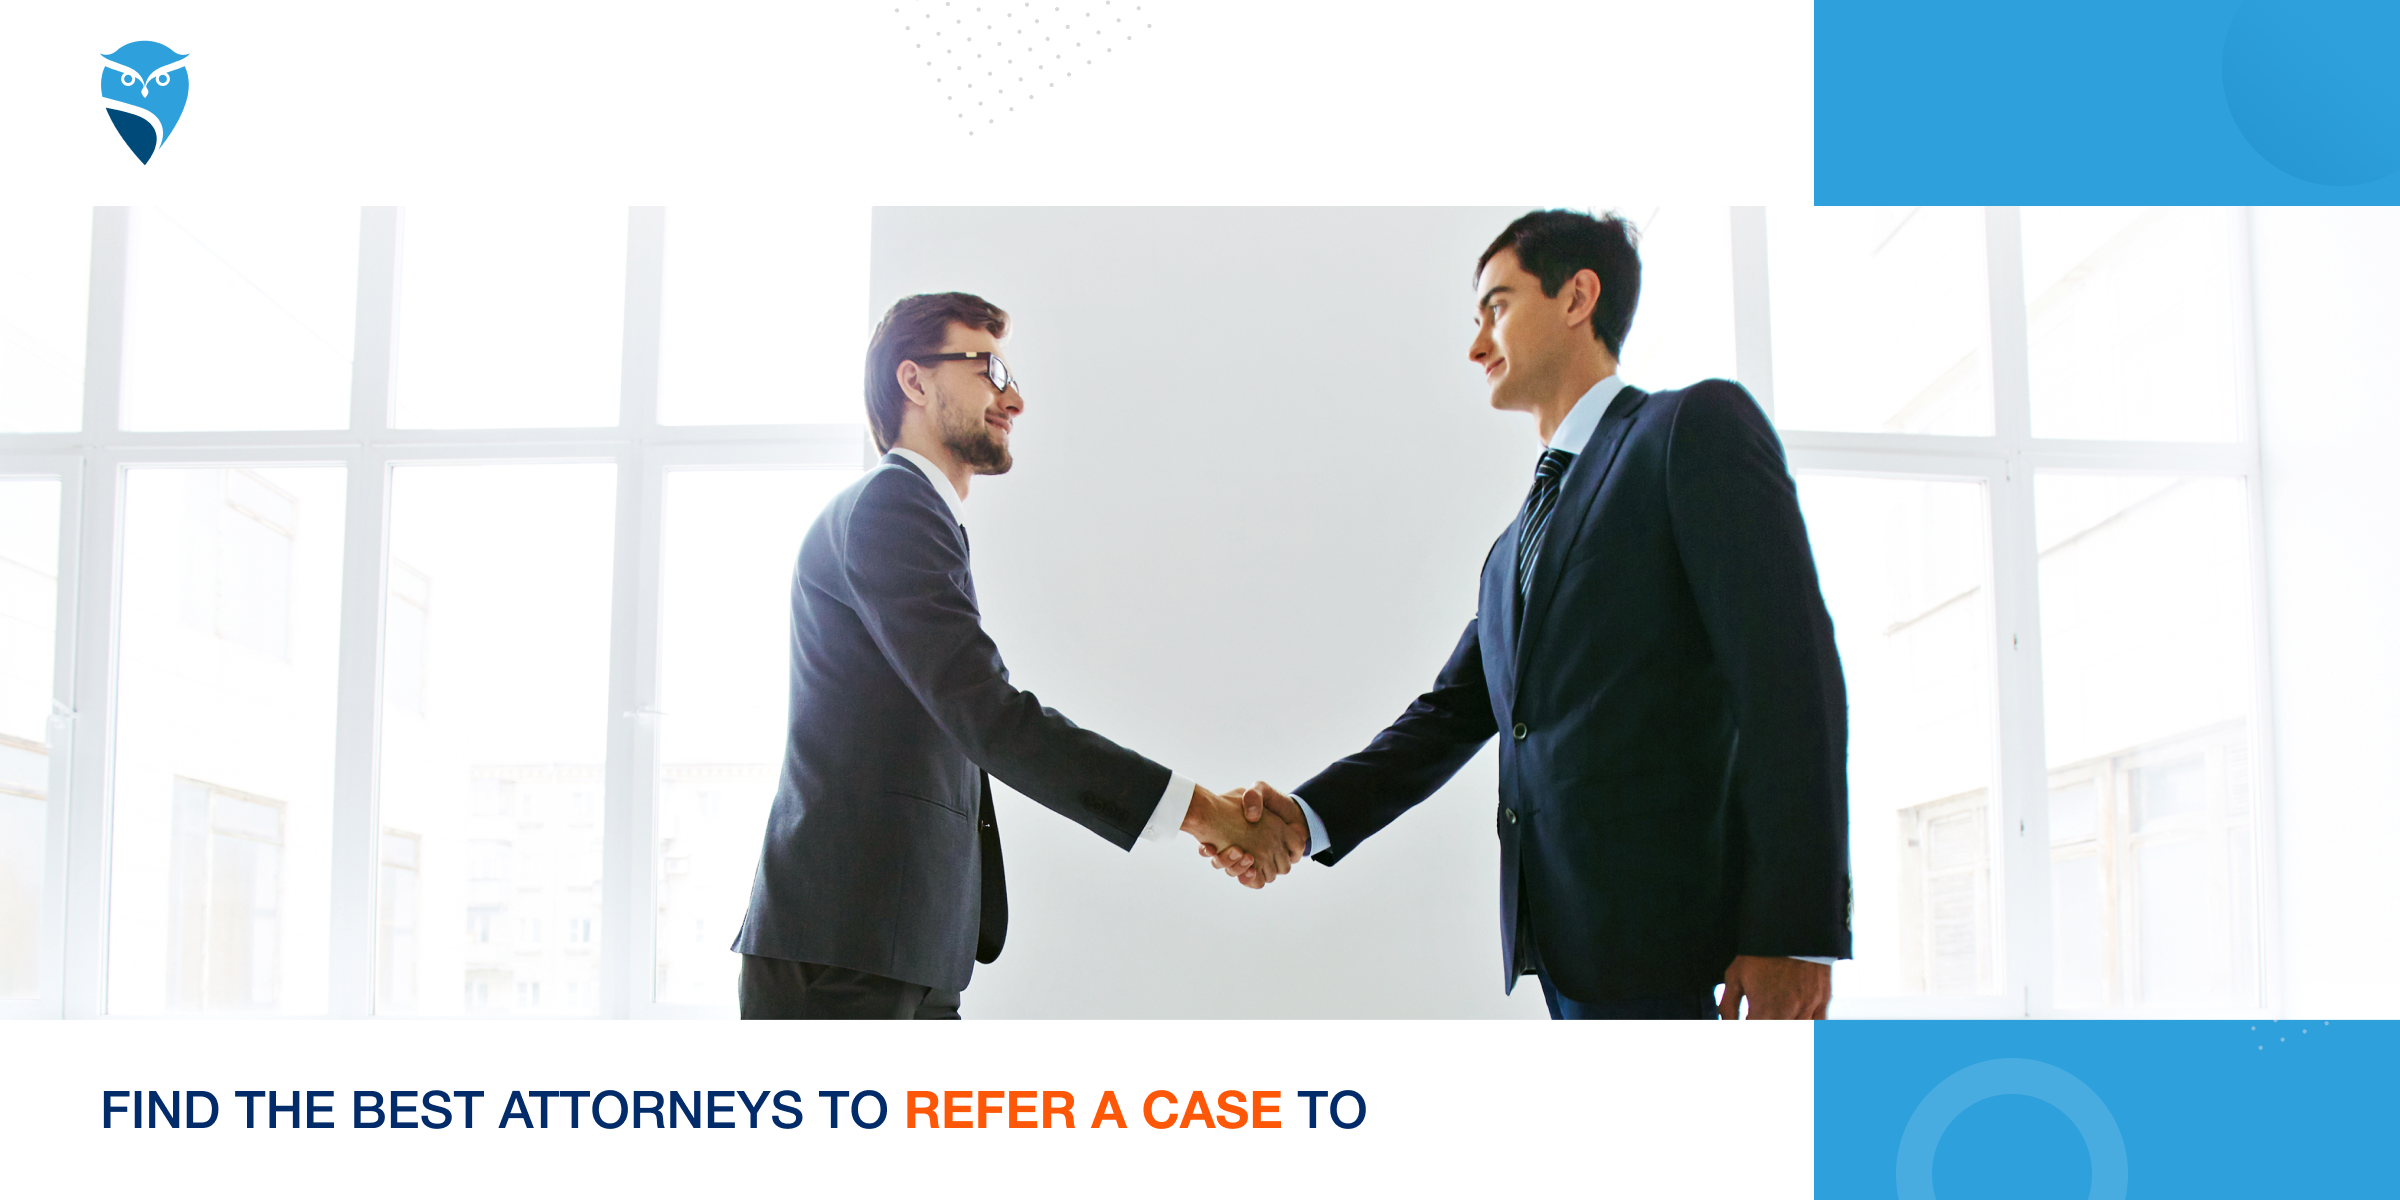 Find the Best Attorneys to Refer a Case To